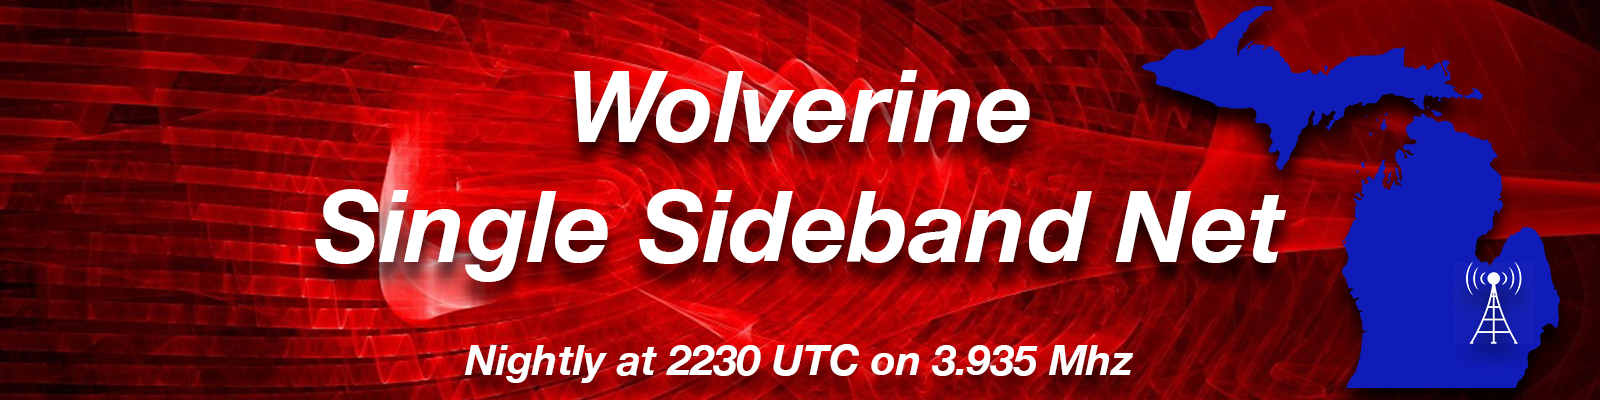 Wolverine Single Sideband Net